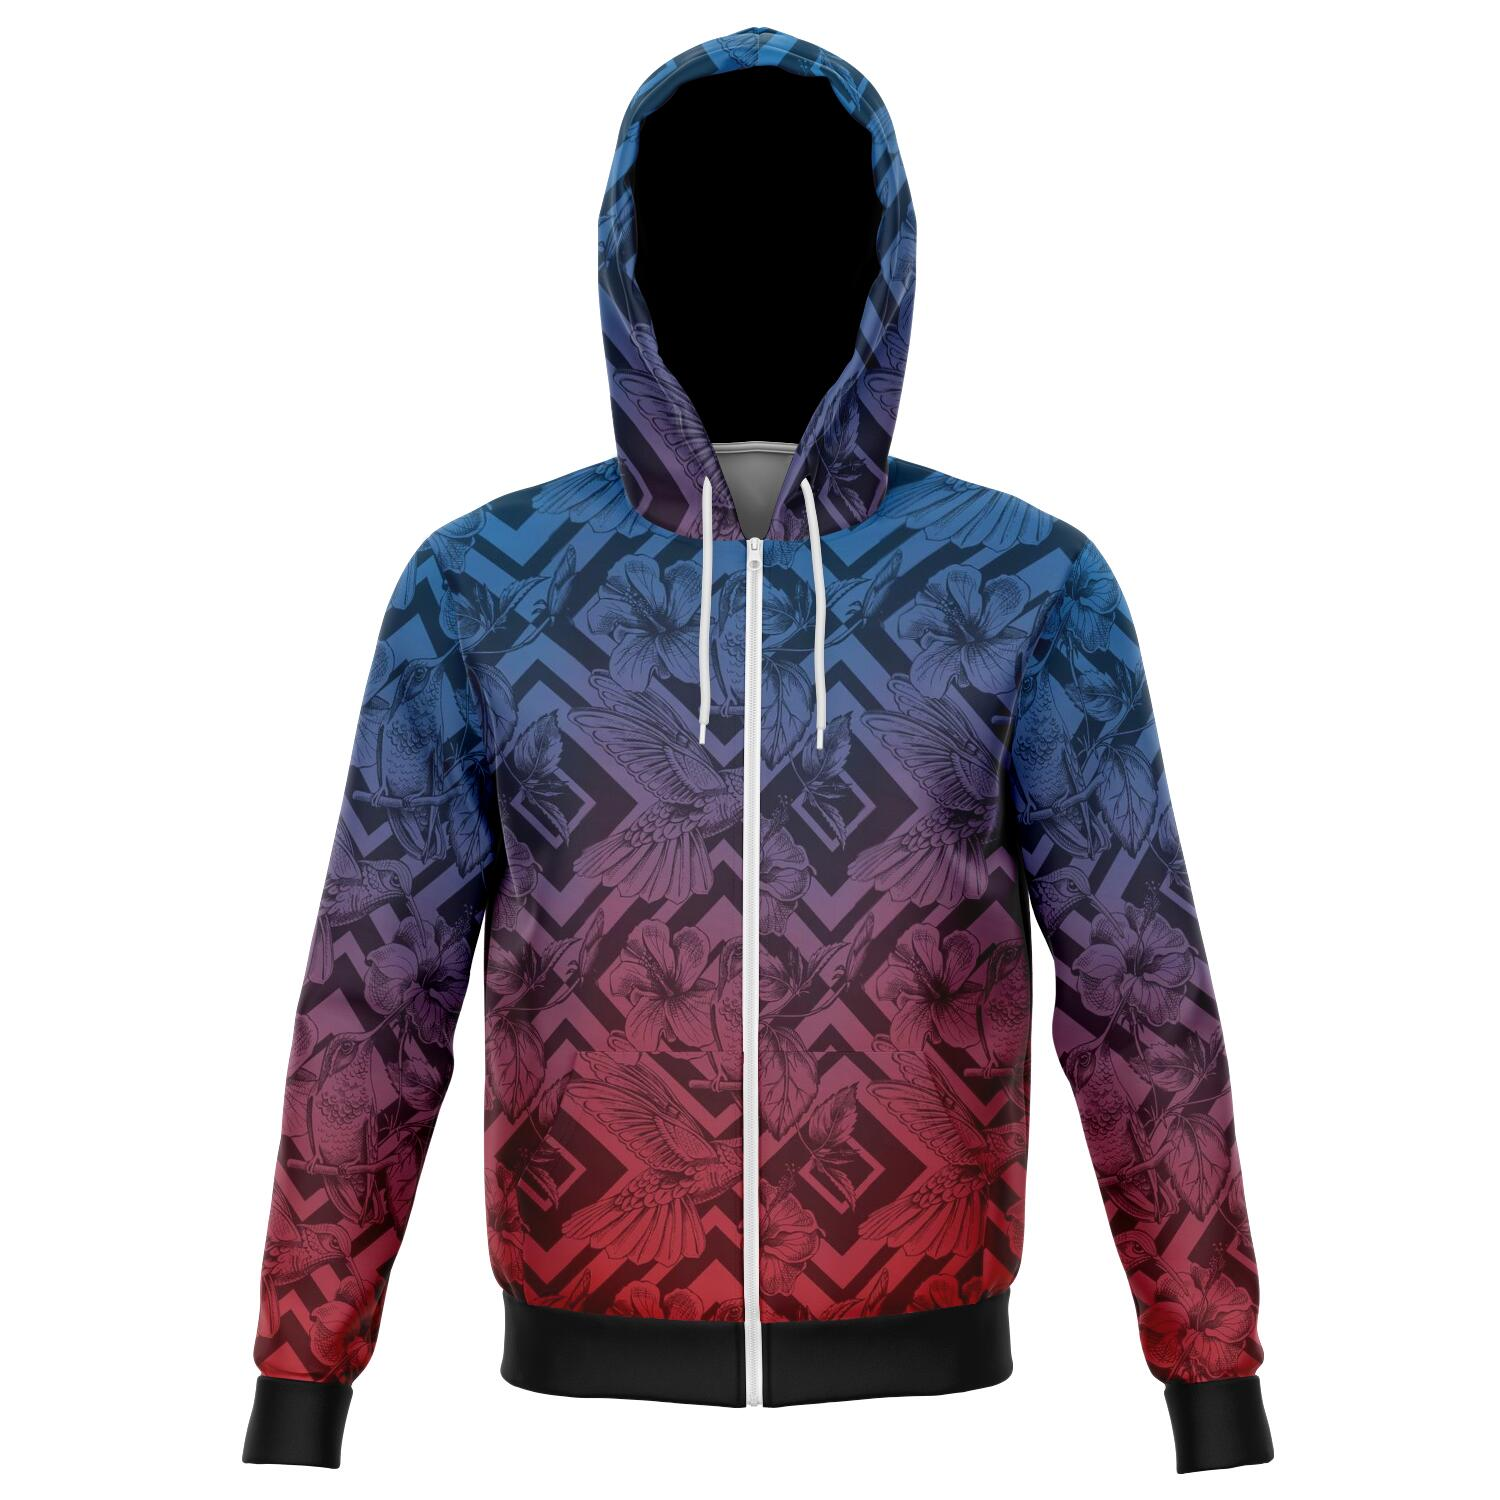 Mockingbird all over print zip up hoodie unisex - front image